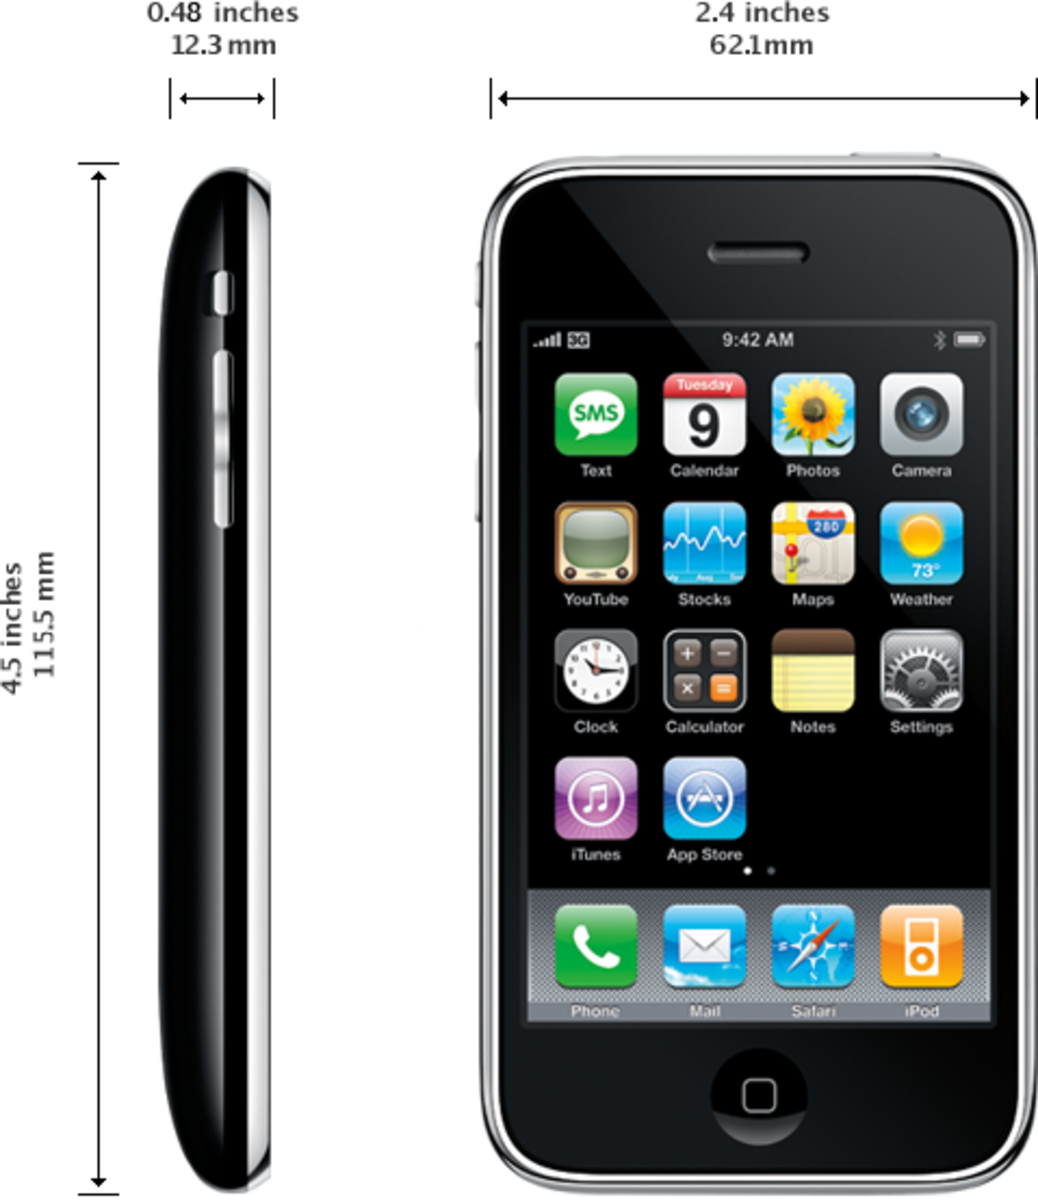 The iPhone 3GS featured a 3-megapixel camera; previous iPhone models only had a 2-megapixel camera.